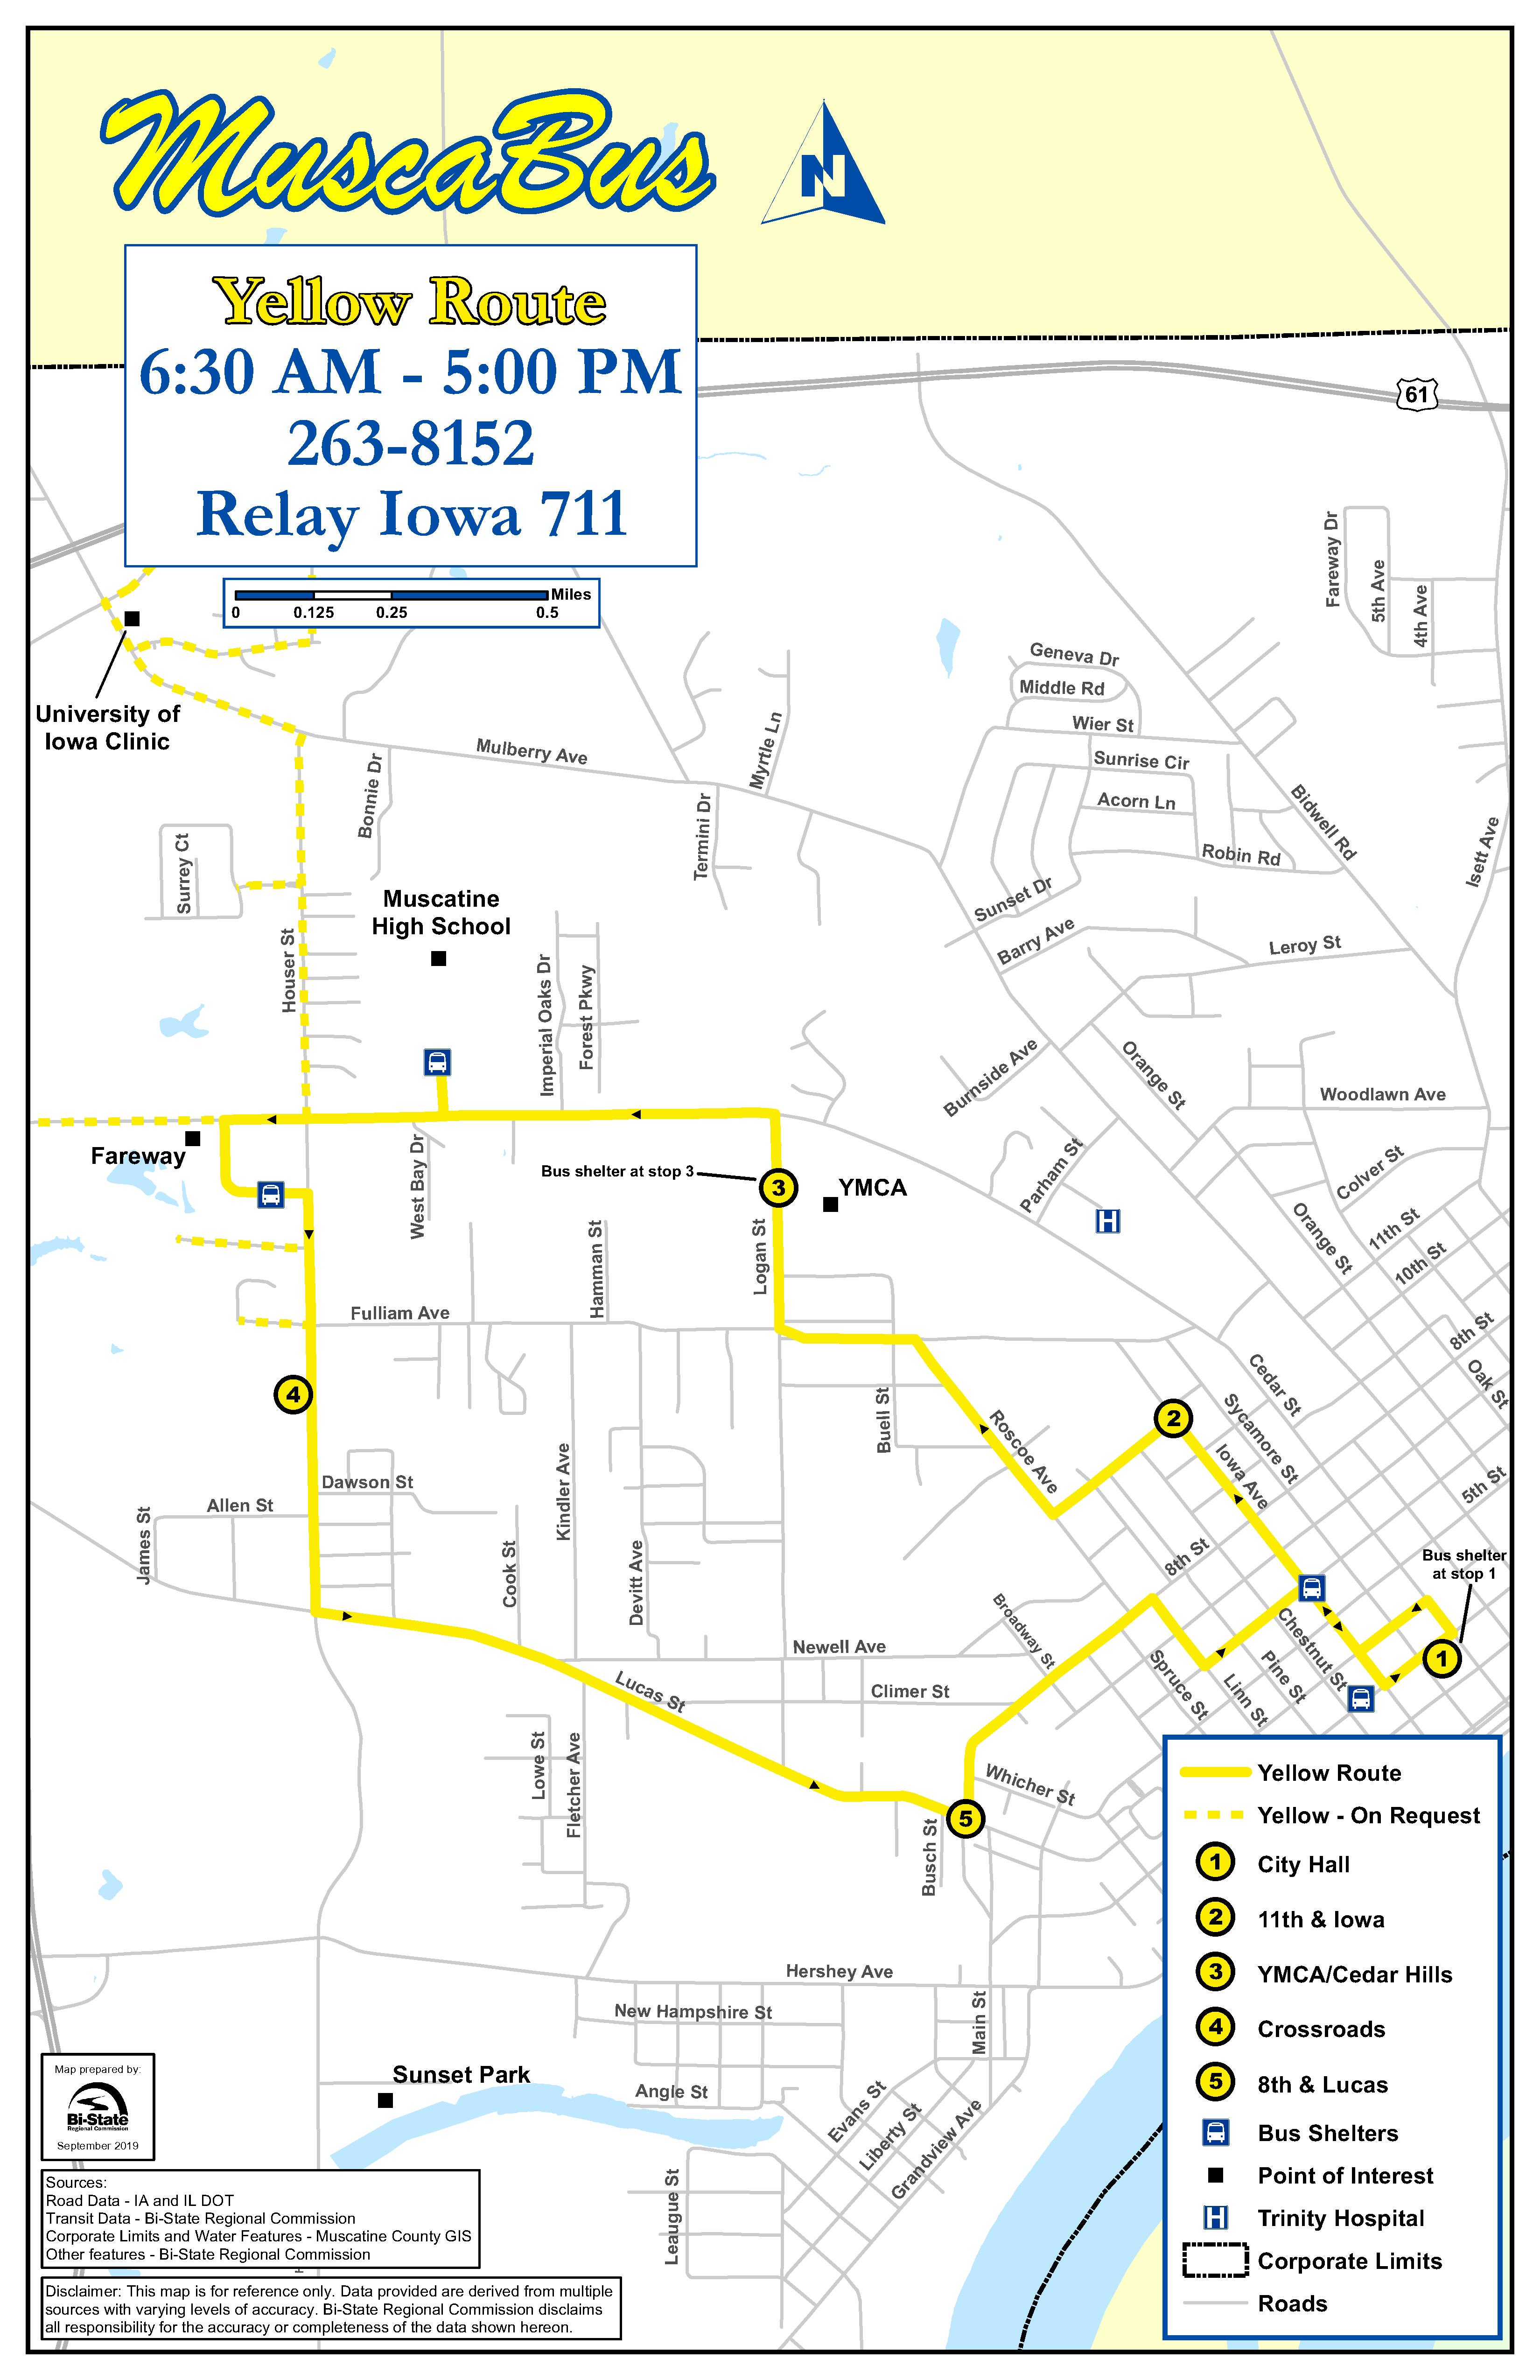 Weekday Yellow Route (JPG)